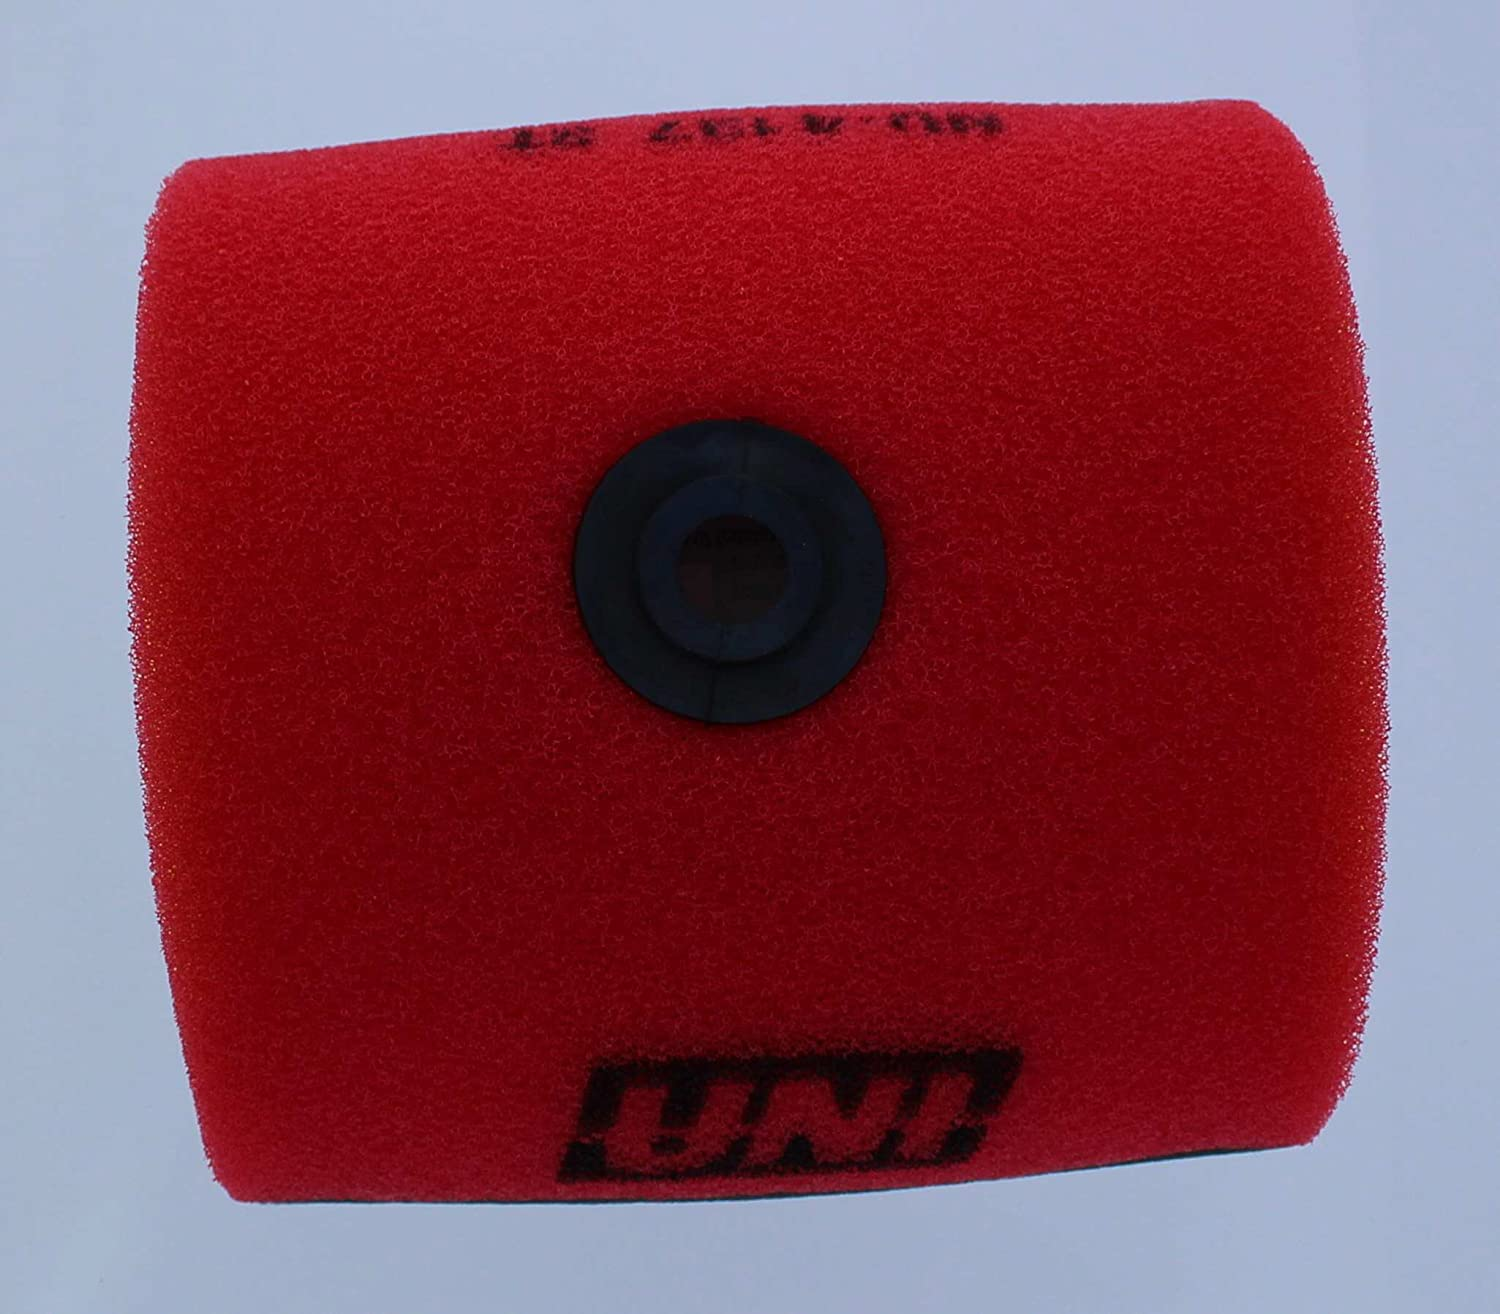 Orange Cycle Parts Air Filter for Honda CRF 230 F Motorcycle Dirtbike 2003-2017 by Uni Filter NU-4137ST replaces # 17213-KPS-900